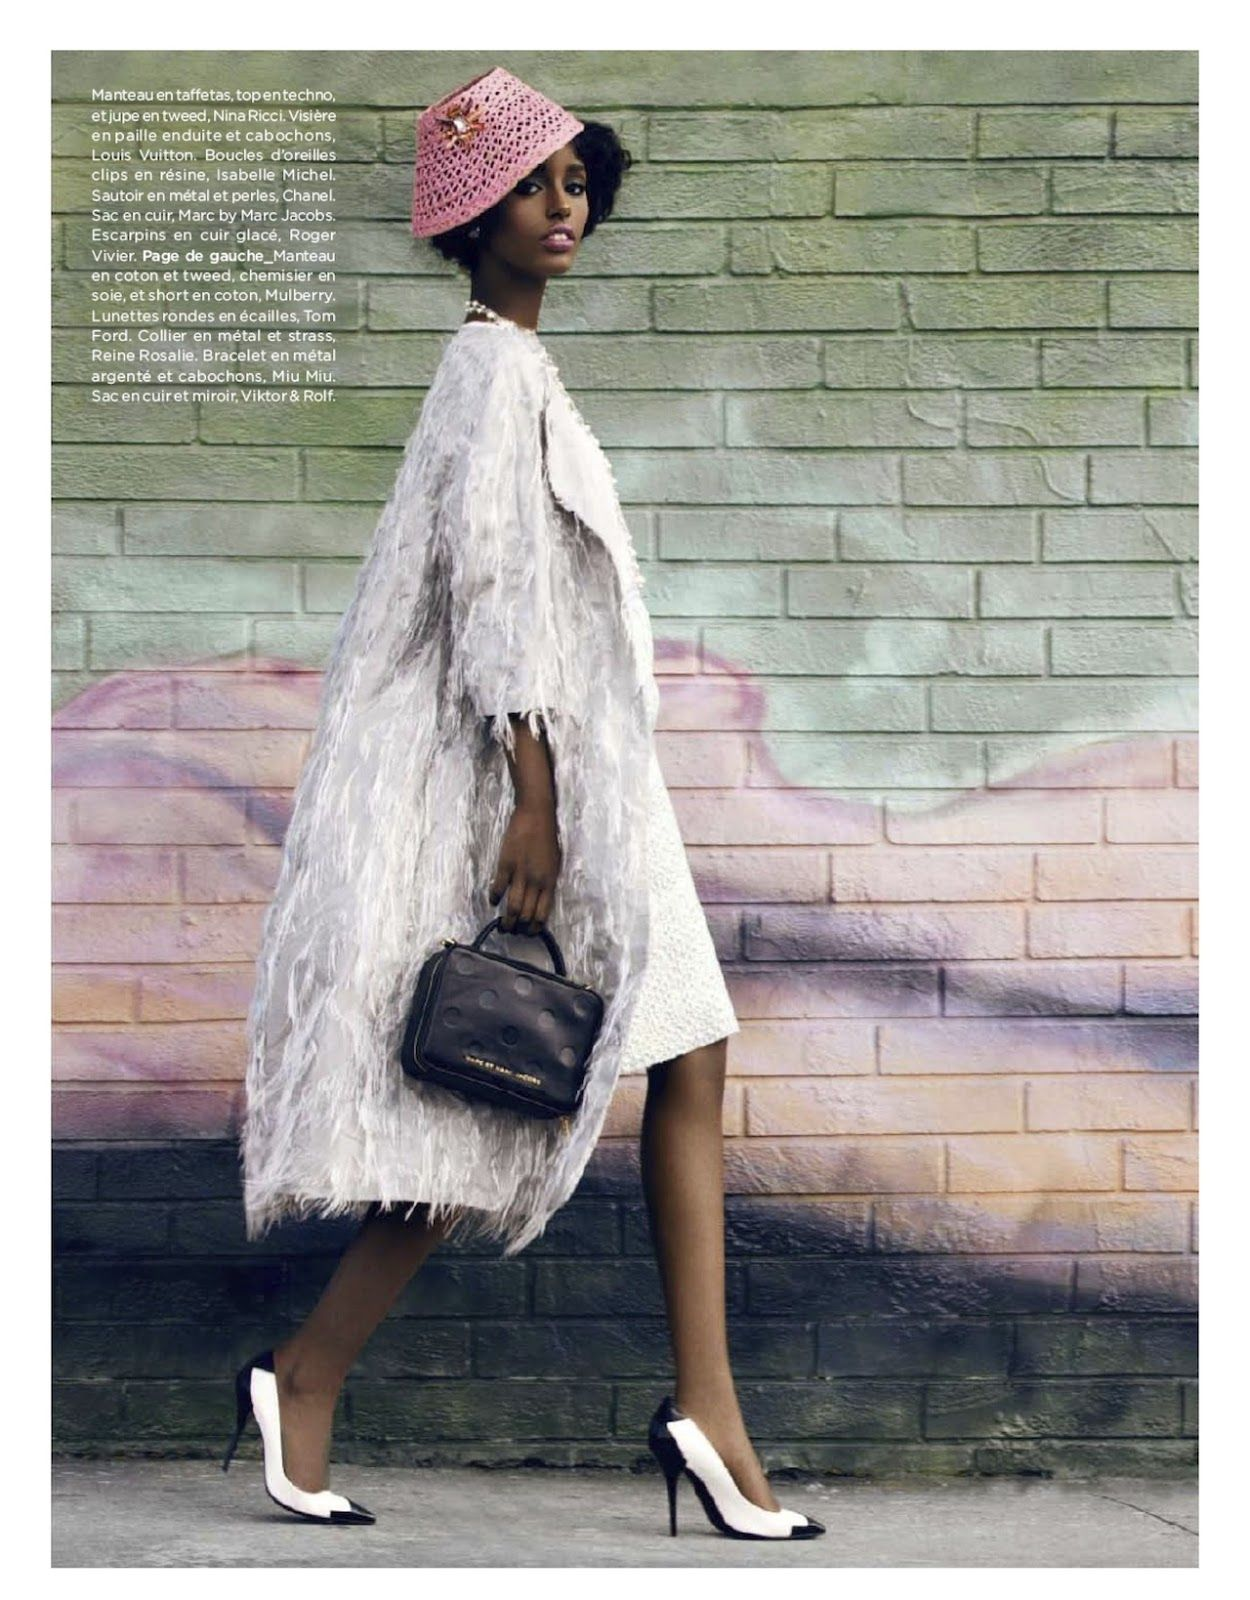 pastel paradise: senait gidey by lucian bor for be #132 march 2013 | visual optimism; fashion editorials, shows, campaigns & more!